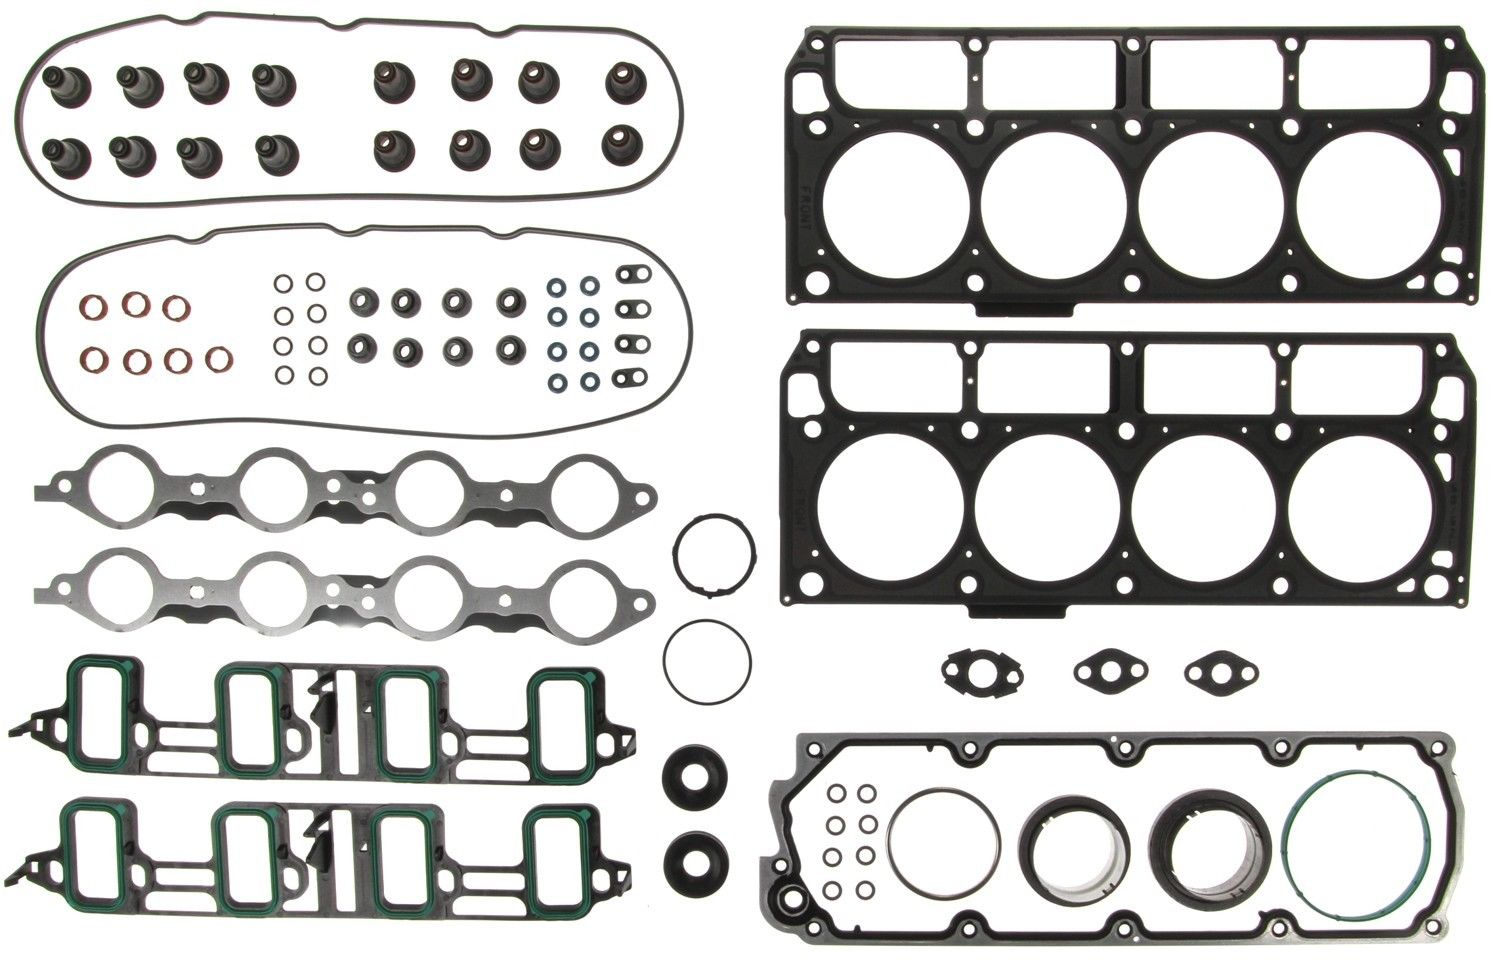 Chevy Gmc 6 0l Ls V8 Engine Cylinder Head Gasket